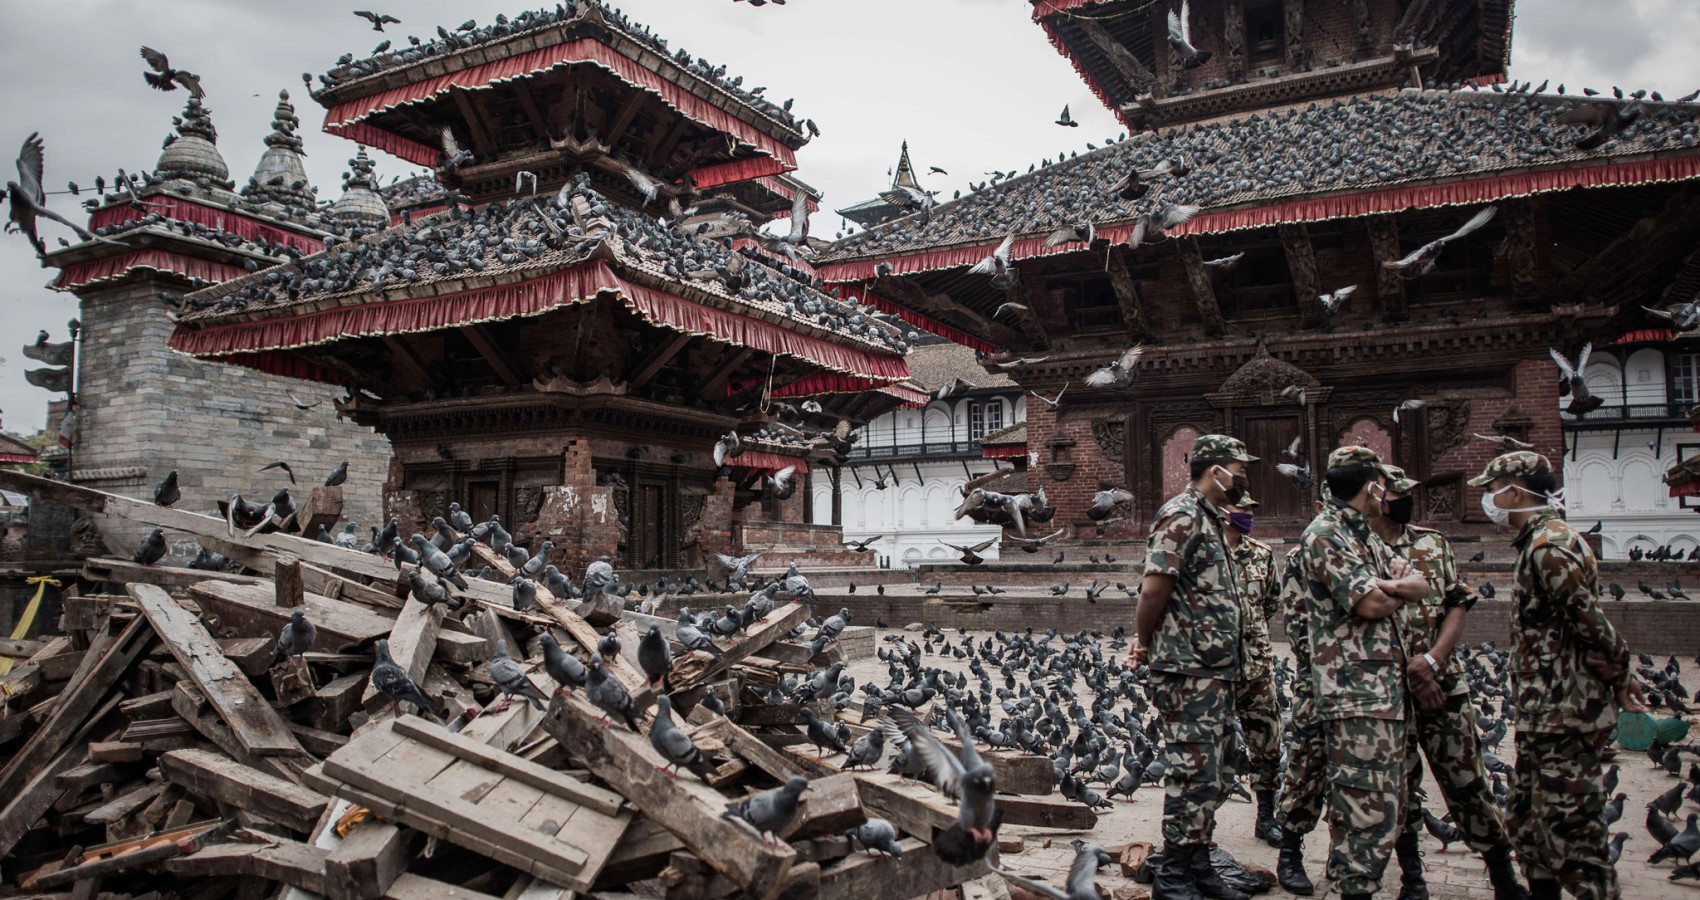 TOPSHOTS Nepalese soldiers stand next to wrecked buildings at Durbar square, a UNESCO world heritage site that was badly damaged by the earthquake, in the historical centre of Kathmandu on April 29, 2015,  following a 7.8 magnitude earthquake which struck the Himalayan nation on April 25. Rescuers are facing a race against time  to find survivors of a mammoth earthquake that killed more than 5,000 people when it through Nepal five days ago and devastated large parts of one of Asia's poorest nations.    AFP PHOTO / Philippe LopezPHILIPPE LOPEZ/AFP/Getty Images